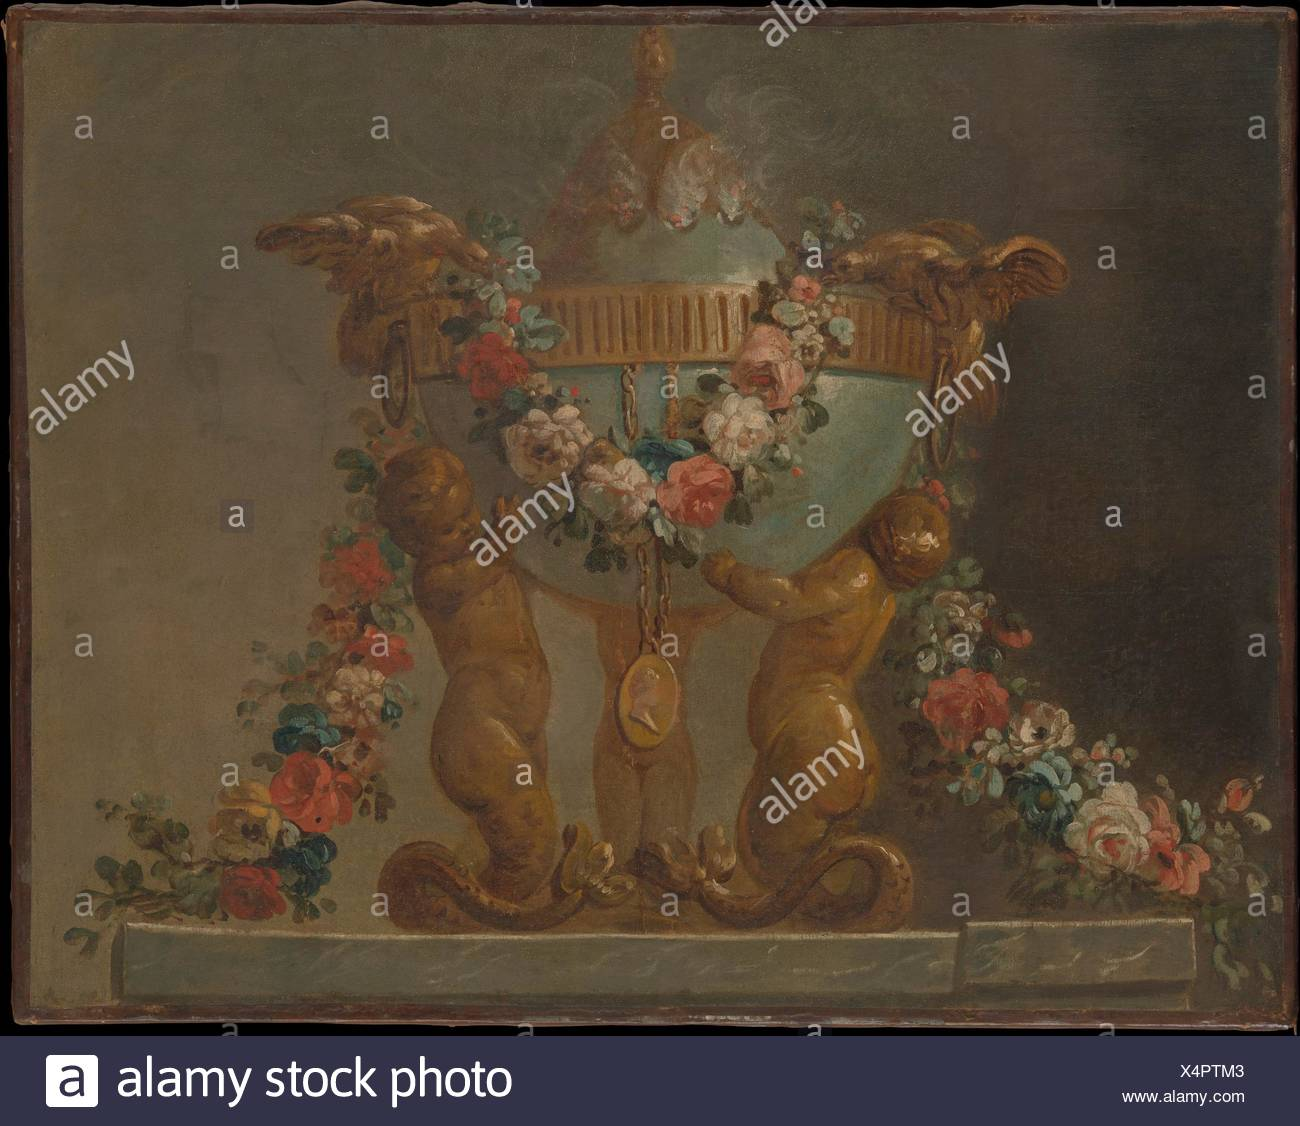 Perfume-burner supported by baby tritons and garlanded with flowers. Artist: French Painter , 18th century; Date: 18th century; Culture: French; - Stock Image